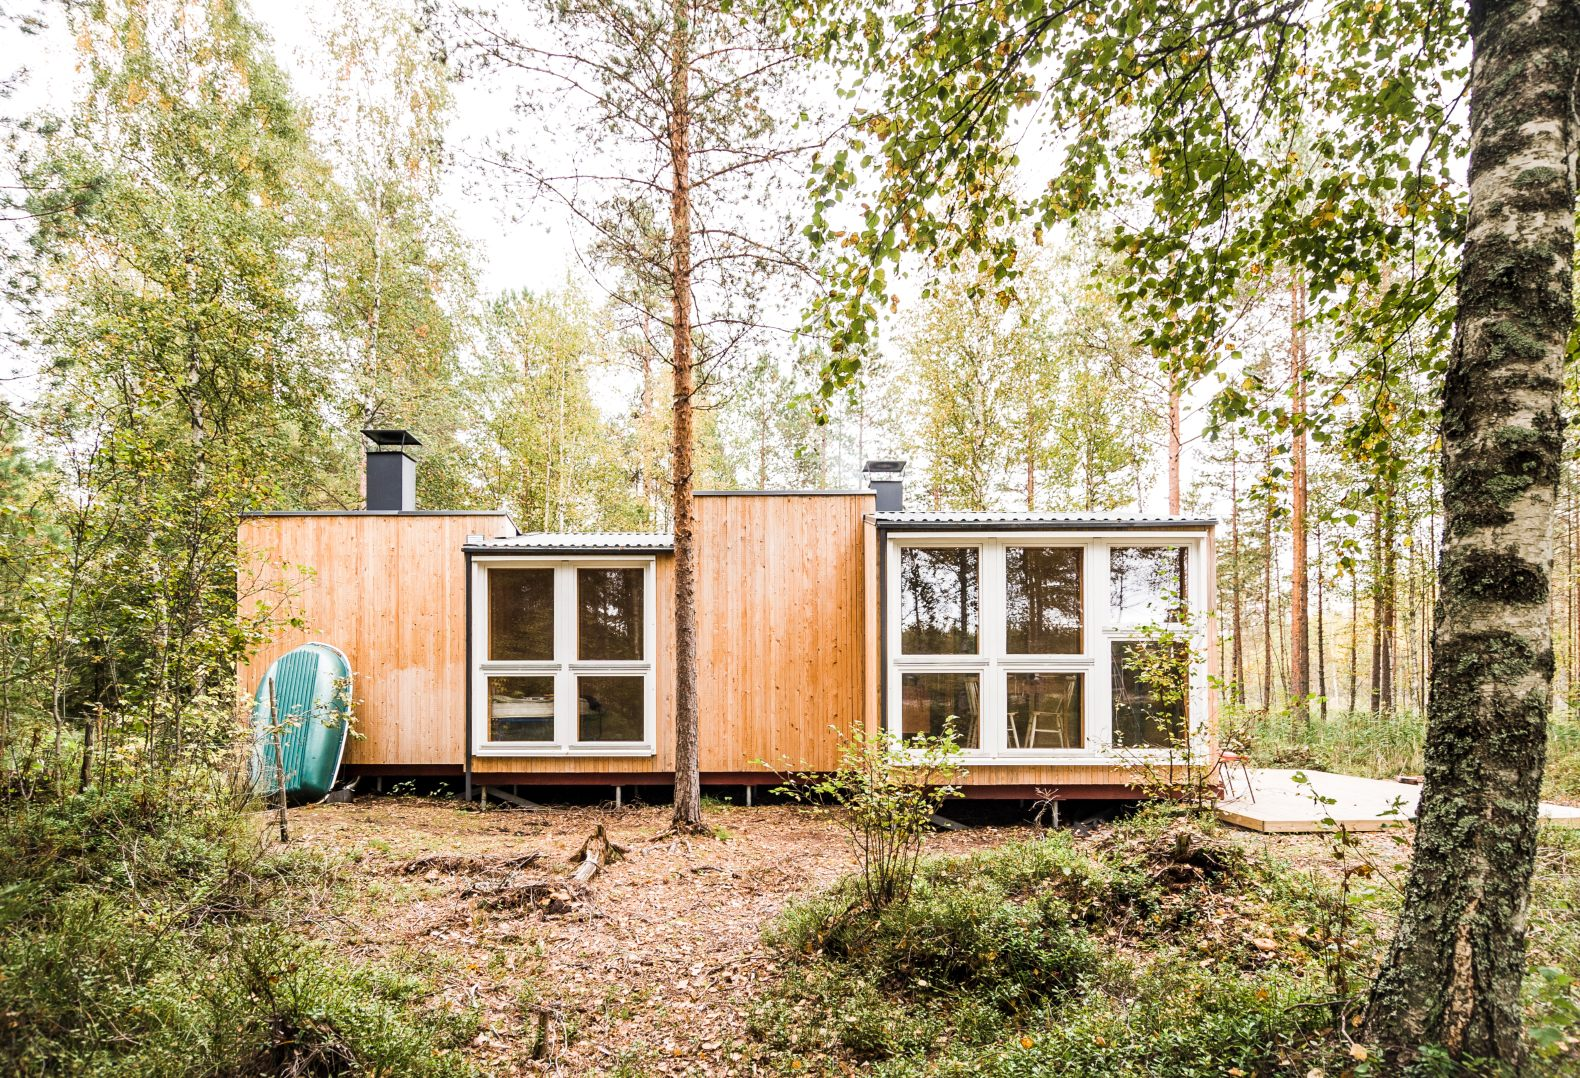 Two design students build a charming, off-grid summer cabin in a remote Finnish forest